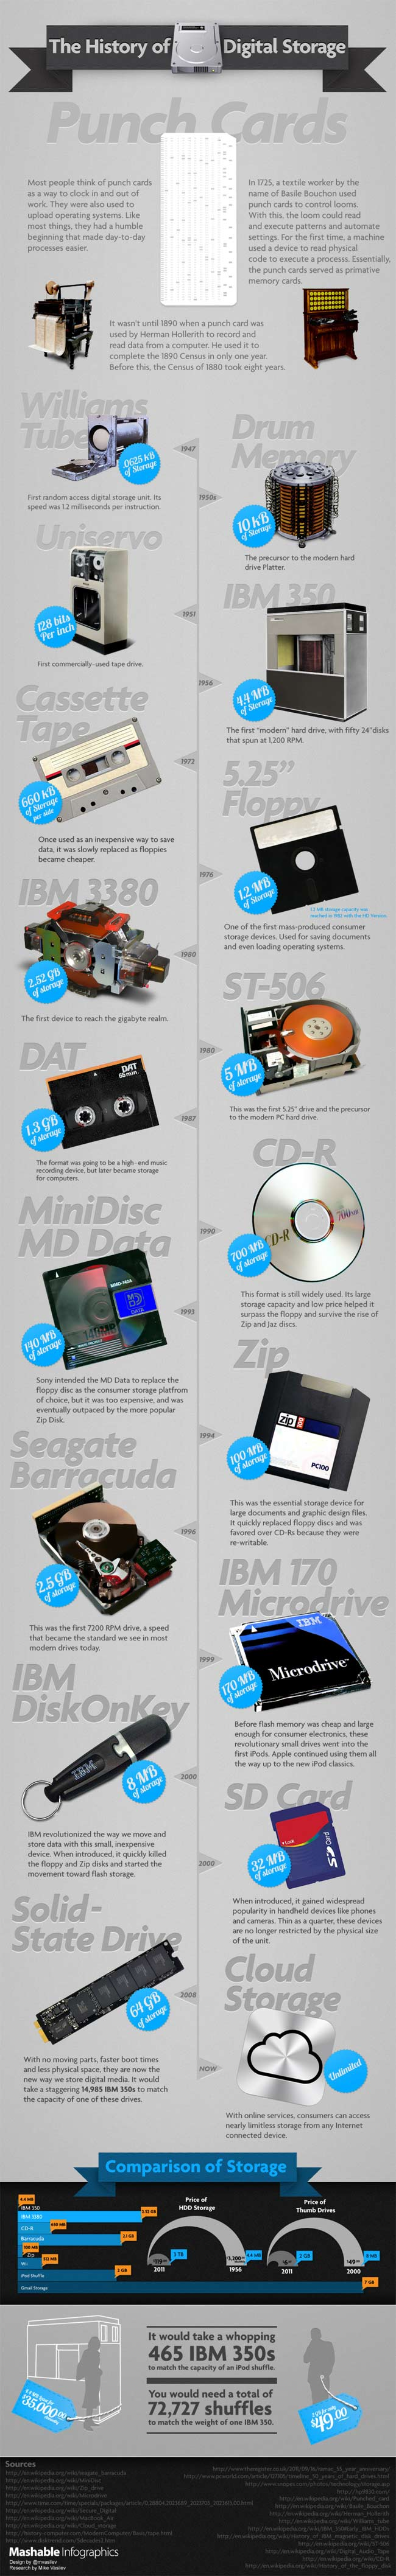 Digital Storage: Then & Now [Infographic]